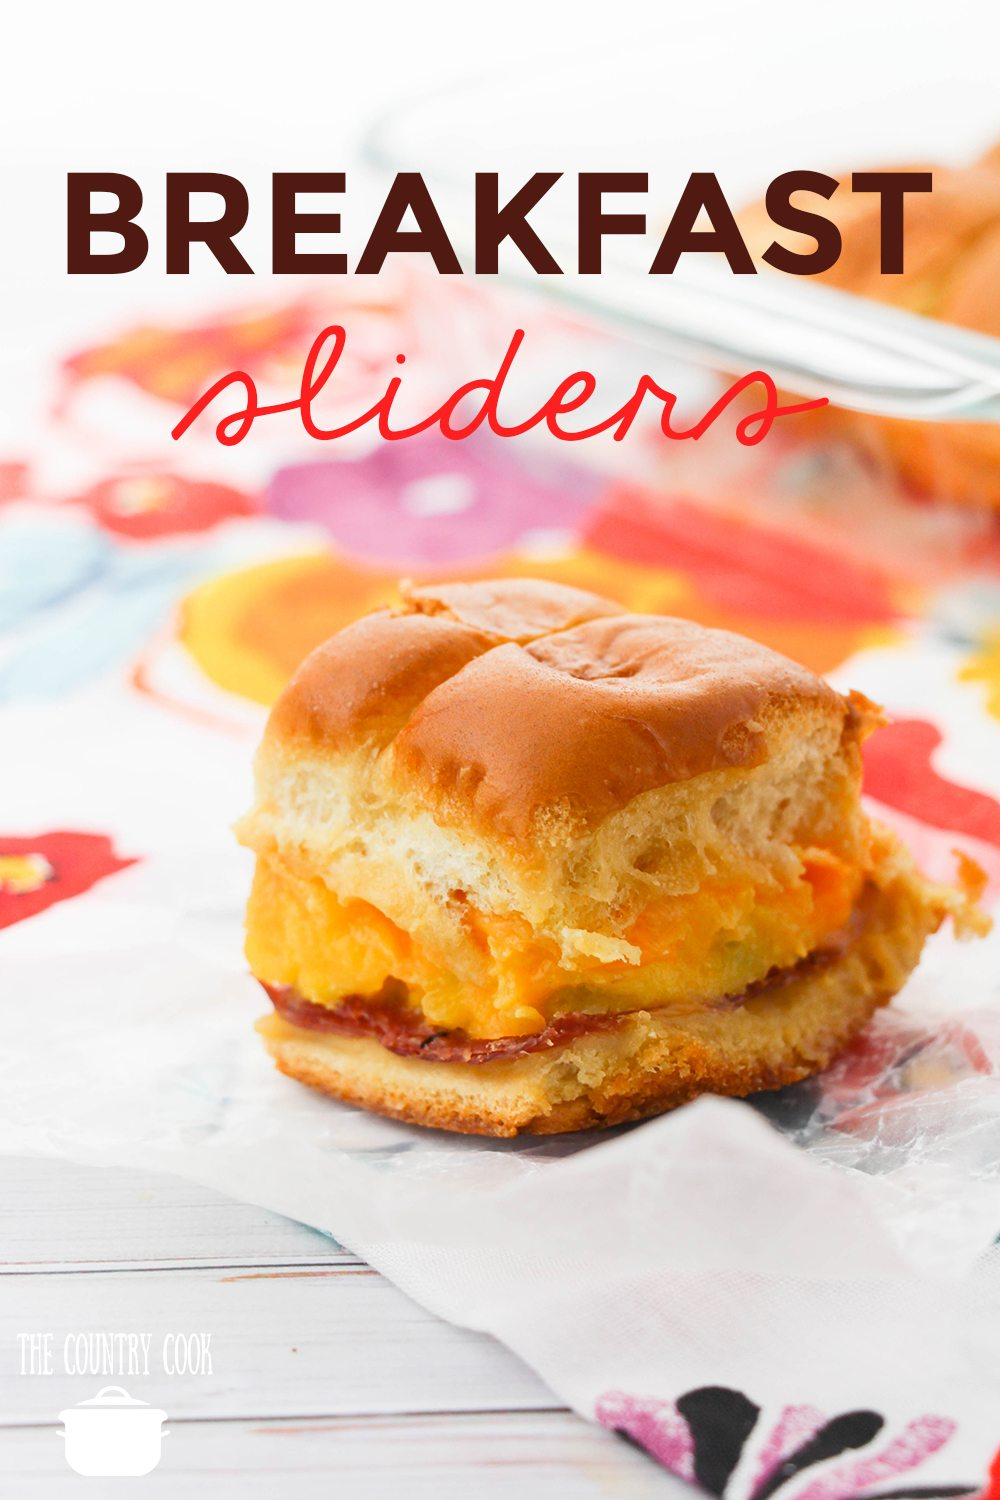 Ham, Egg and Cheese Breakfast Sliders recipe from The Country Cook